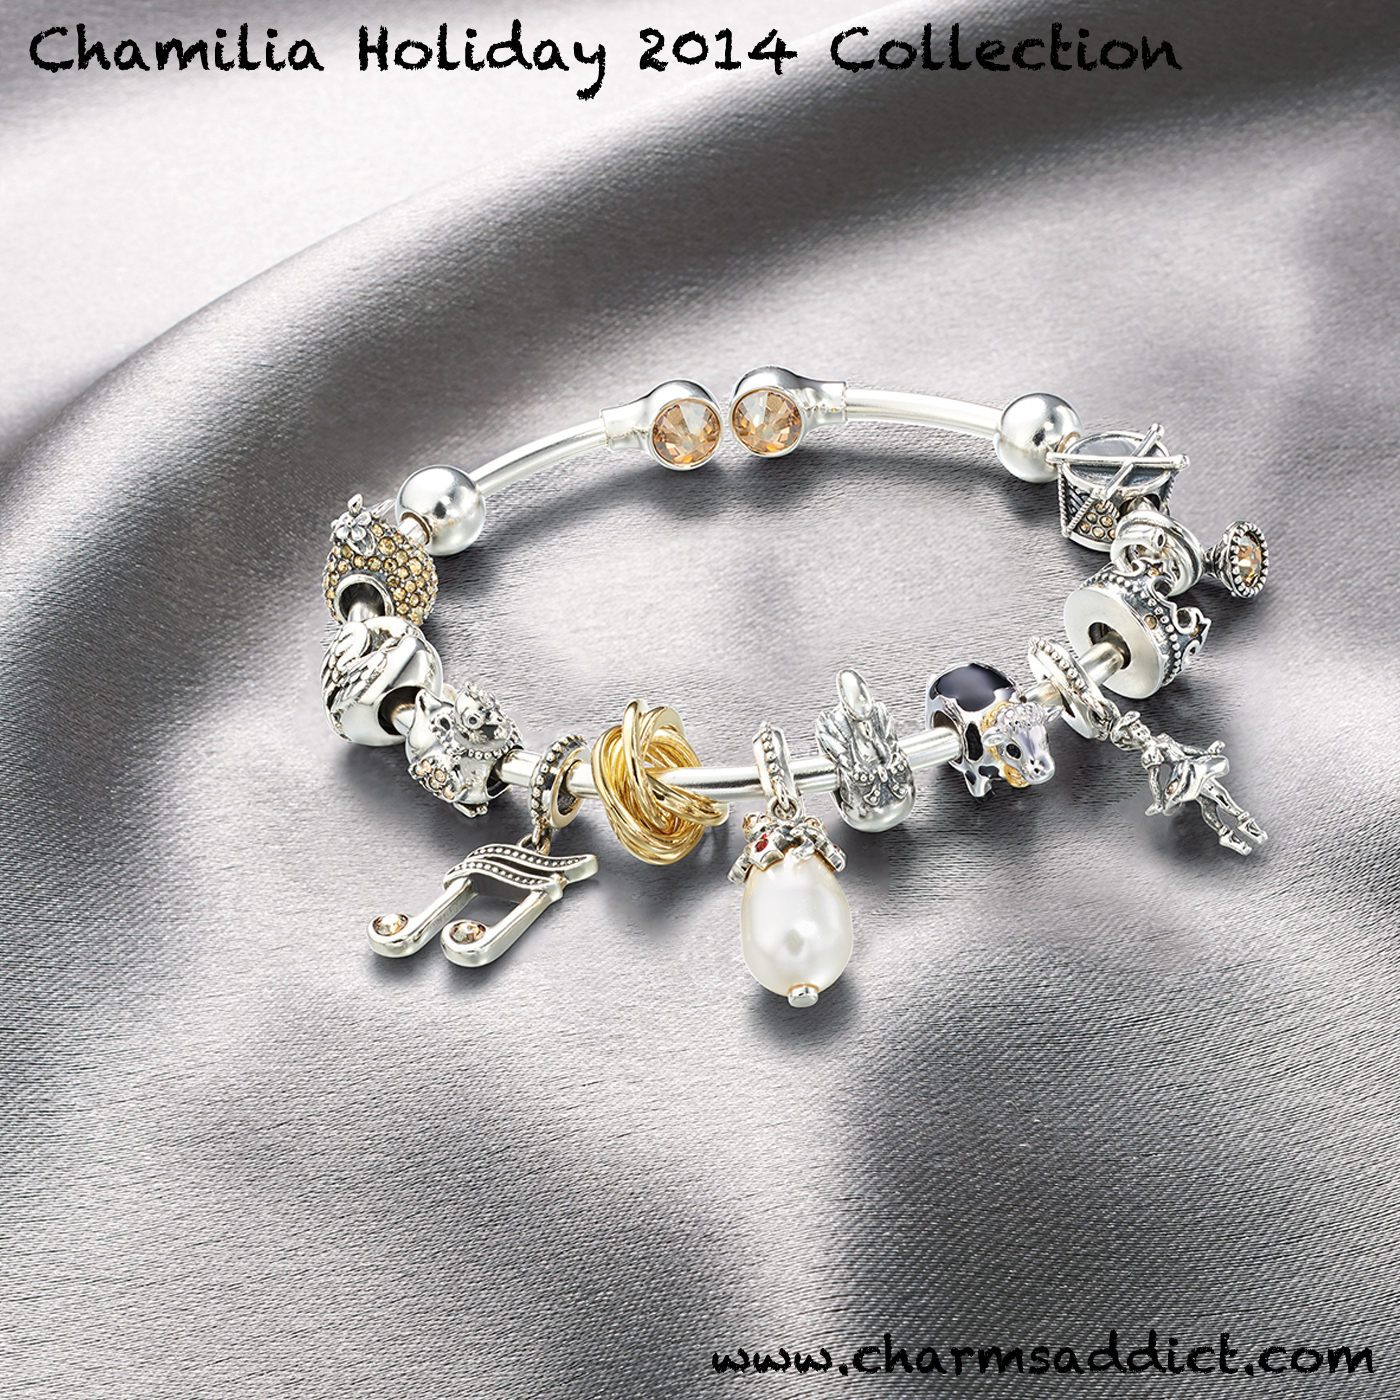 Chamilia Holiday 2014 (Season 4) Release